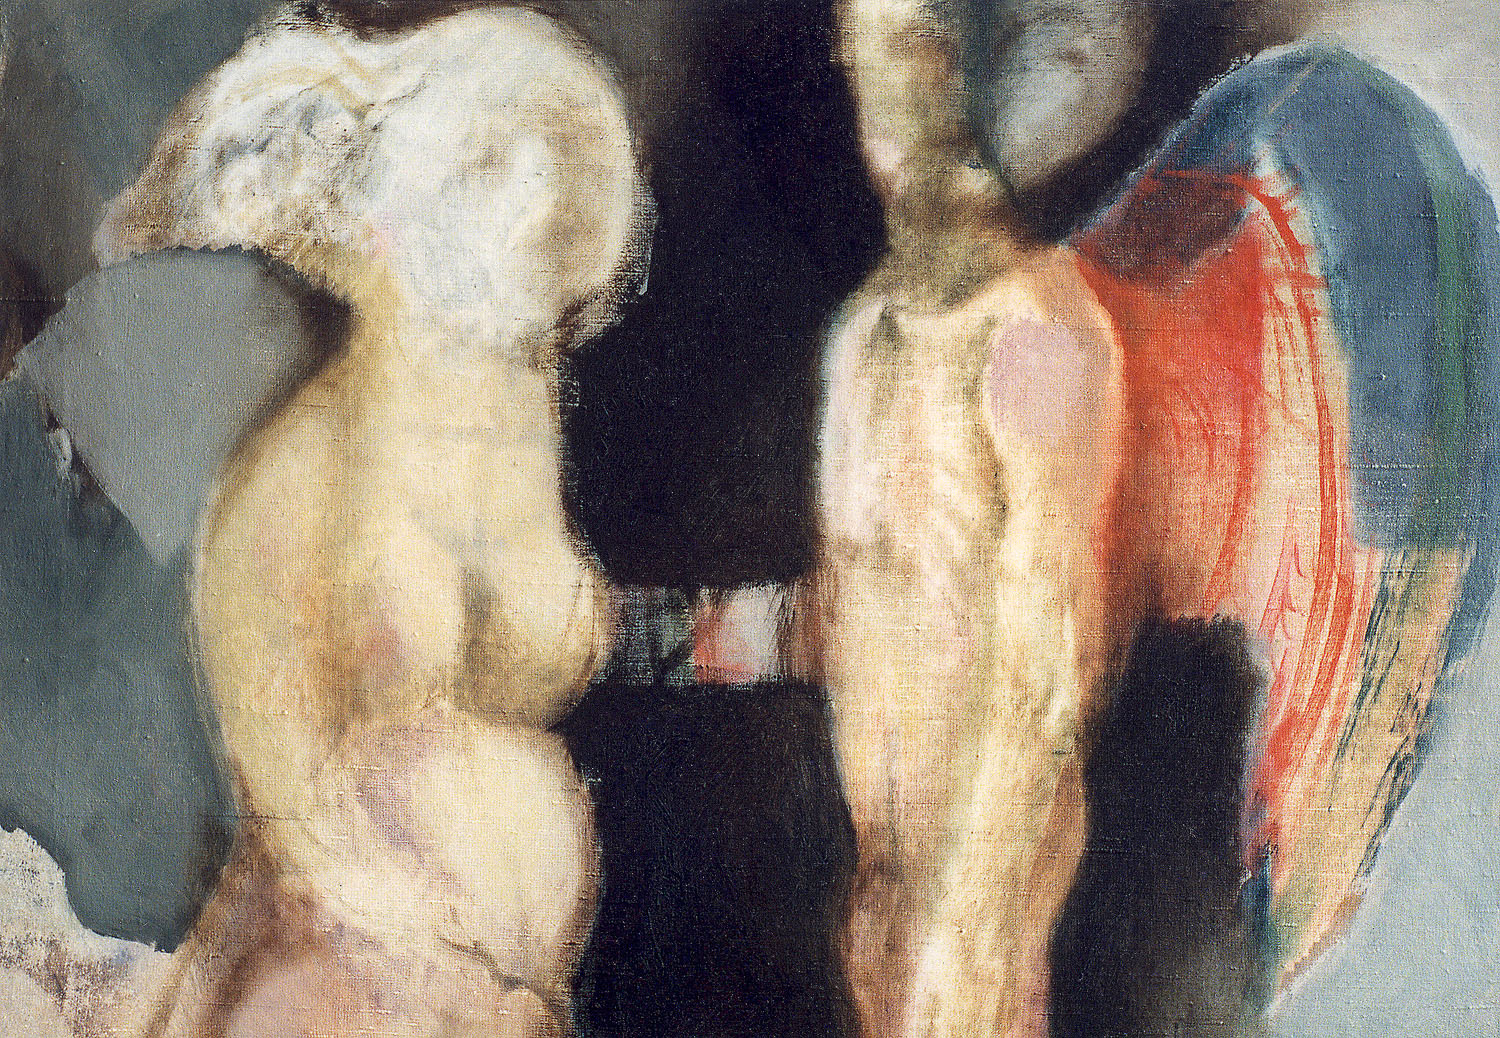 Woman and Angel, 1992, oil on canvas, 27.4 x 35.6 inches, (69.5 x 90.5 cm)